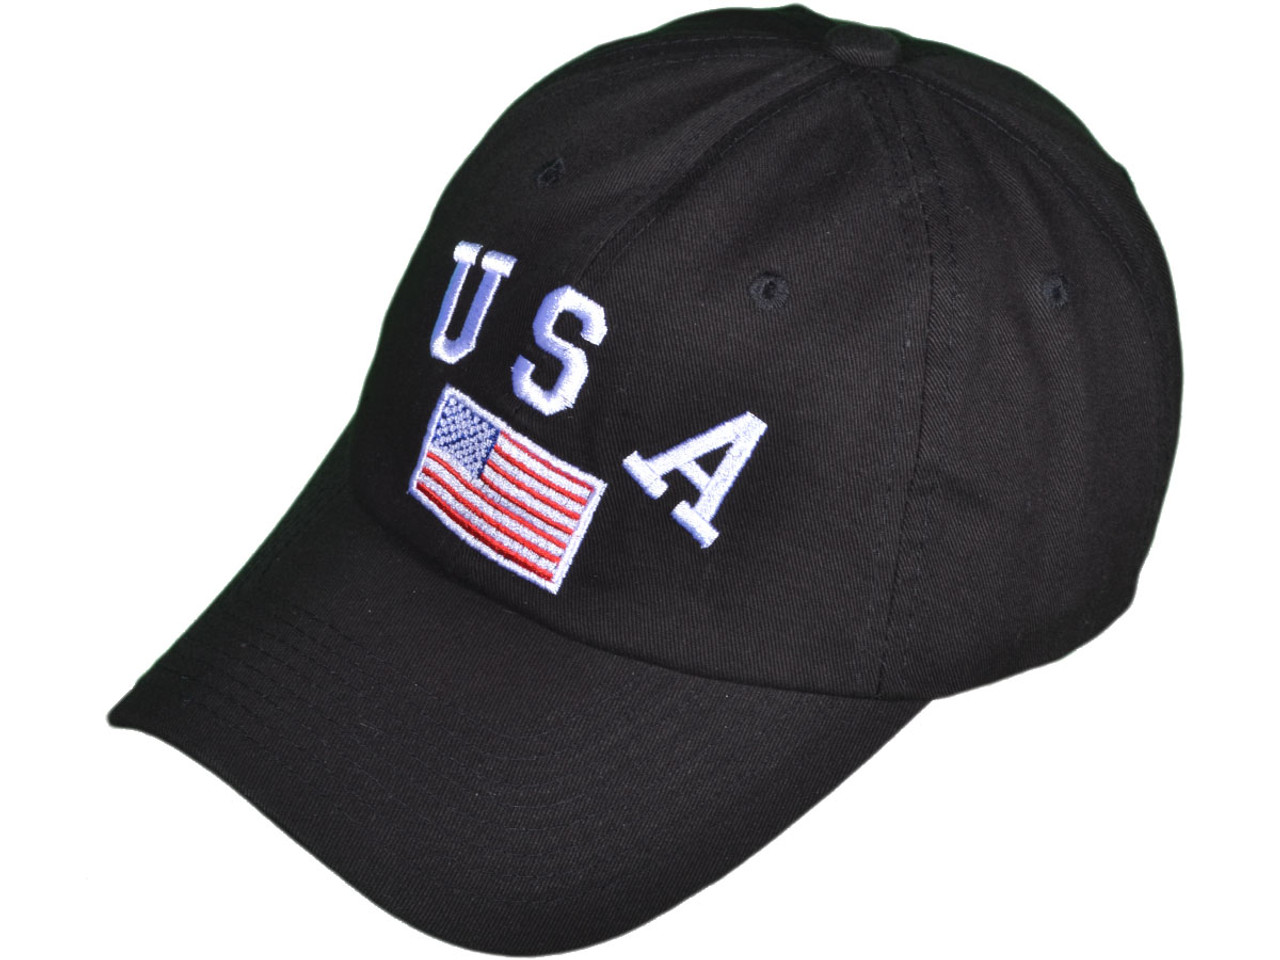 f776b39ff03 Embroidered Unstructured Cotton Color USA Flag Polo BK Caps